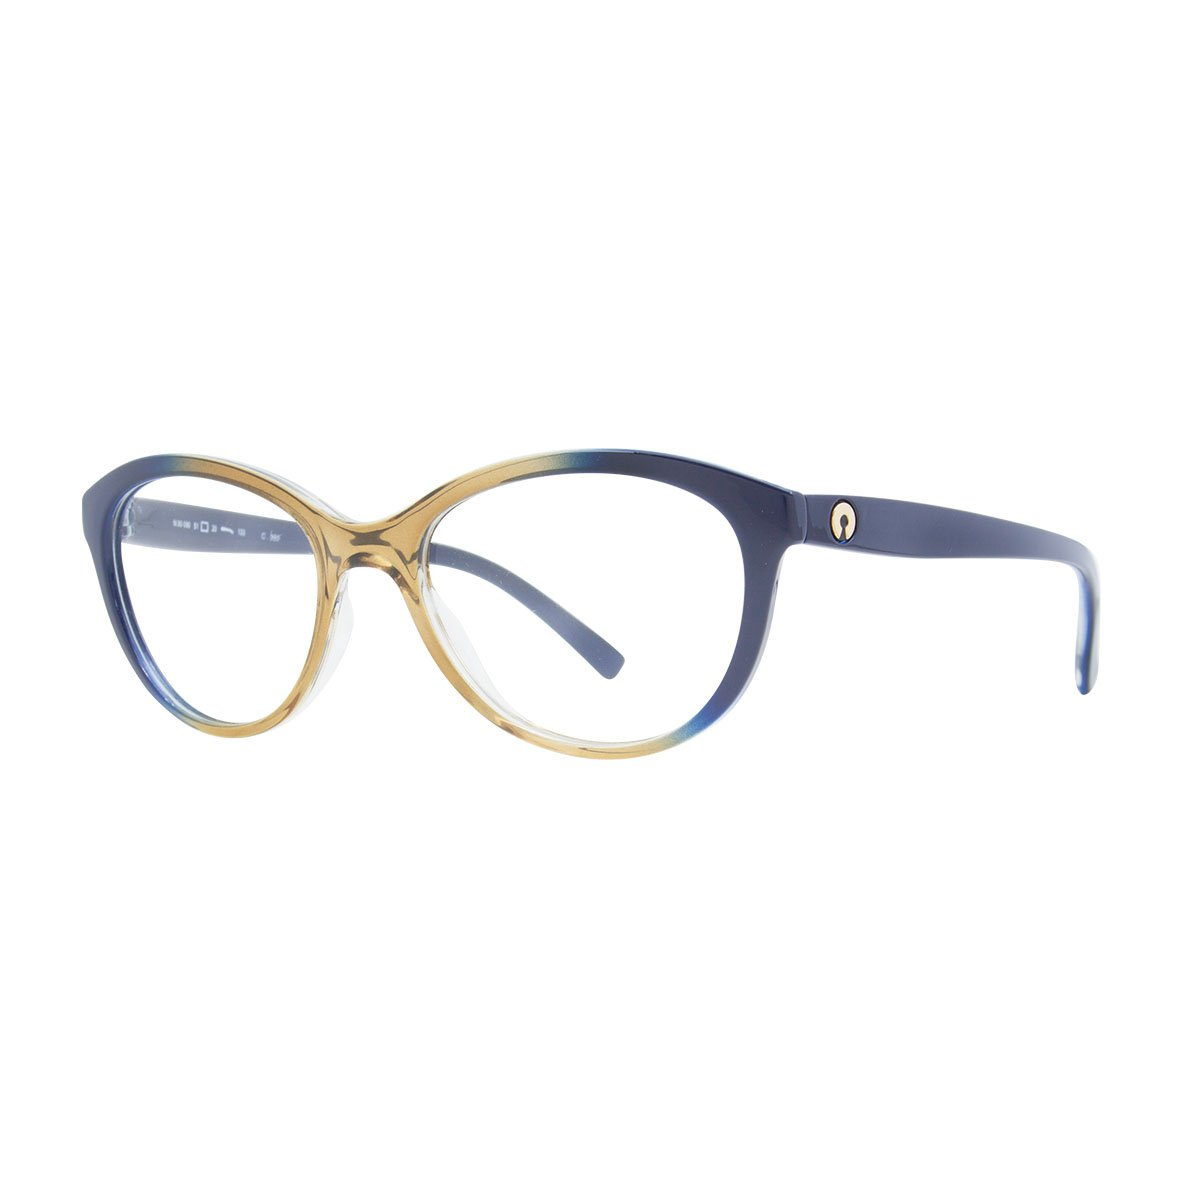 SECRET GRILAMID 80090 FADE BLUE / GOLD